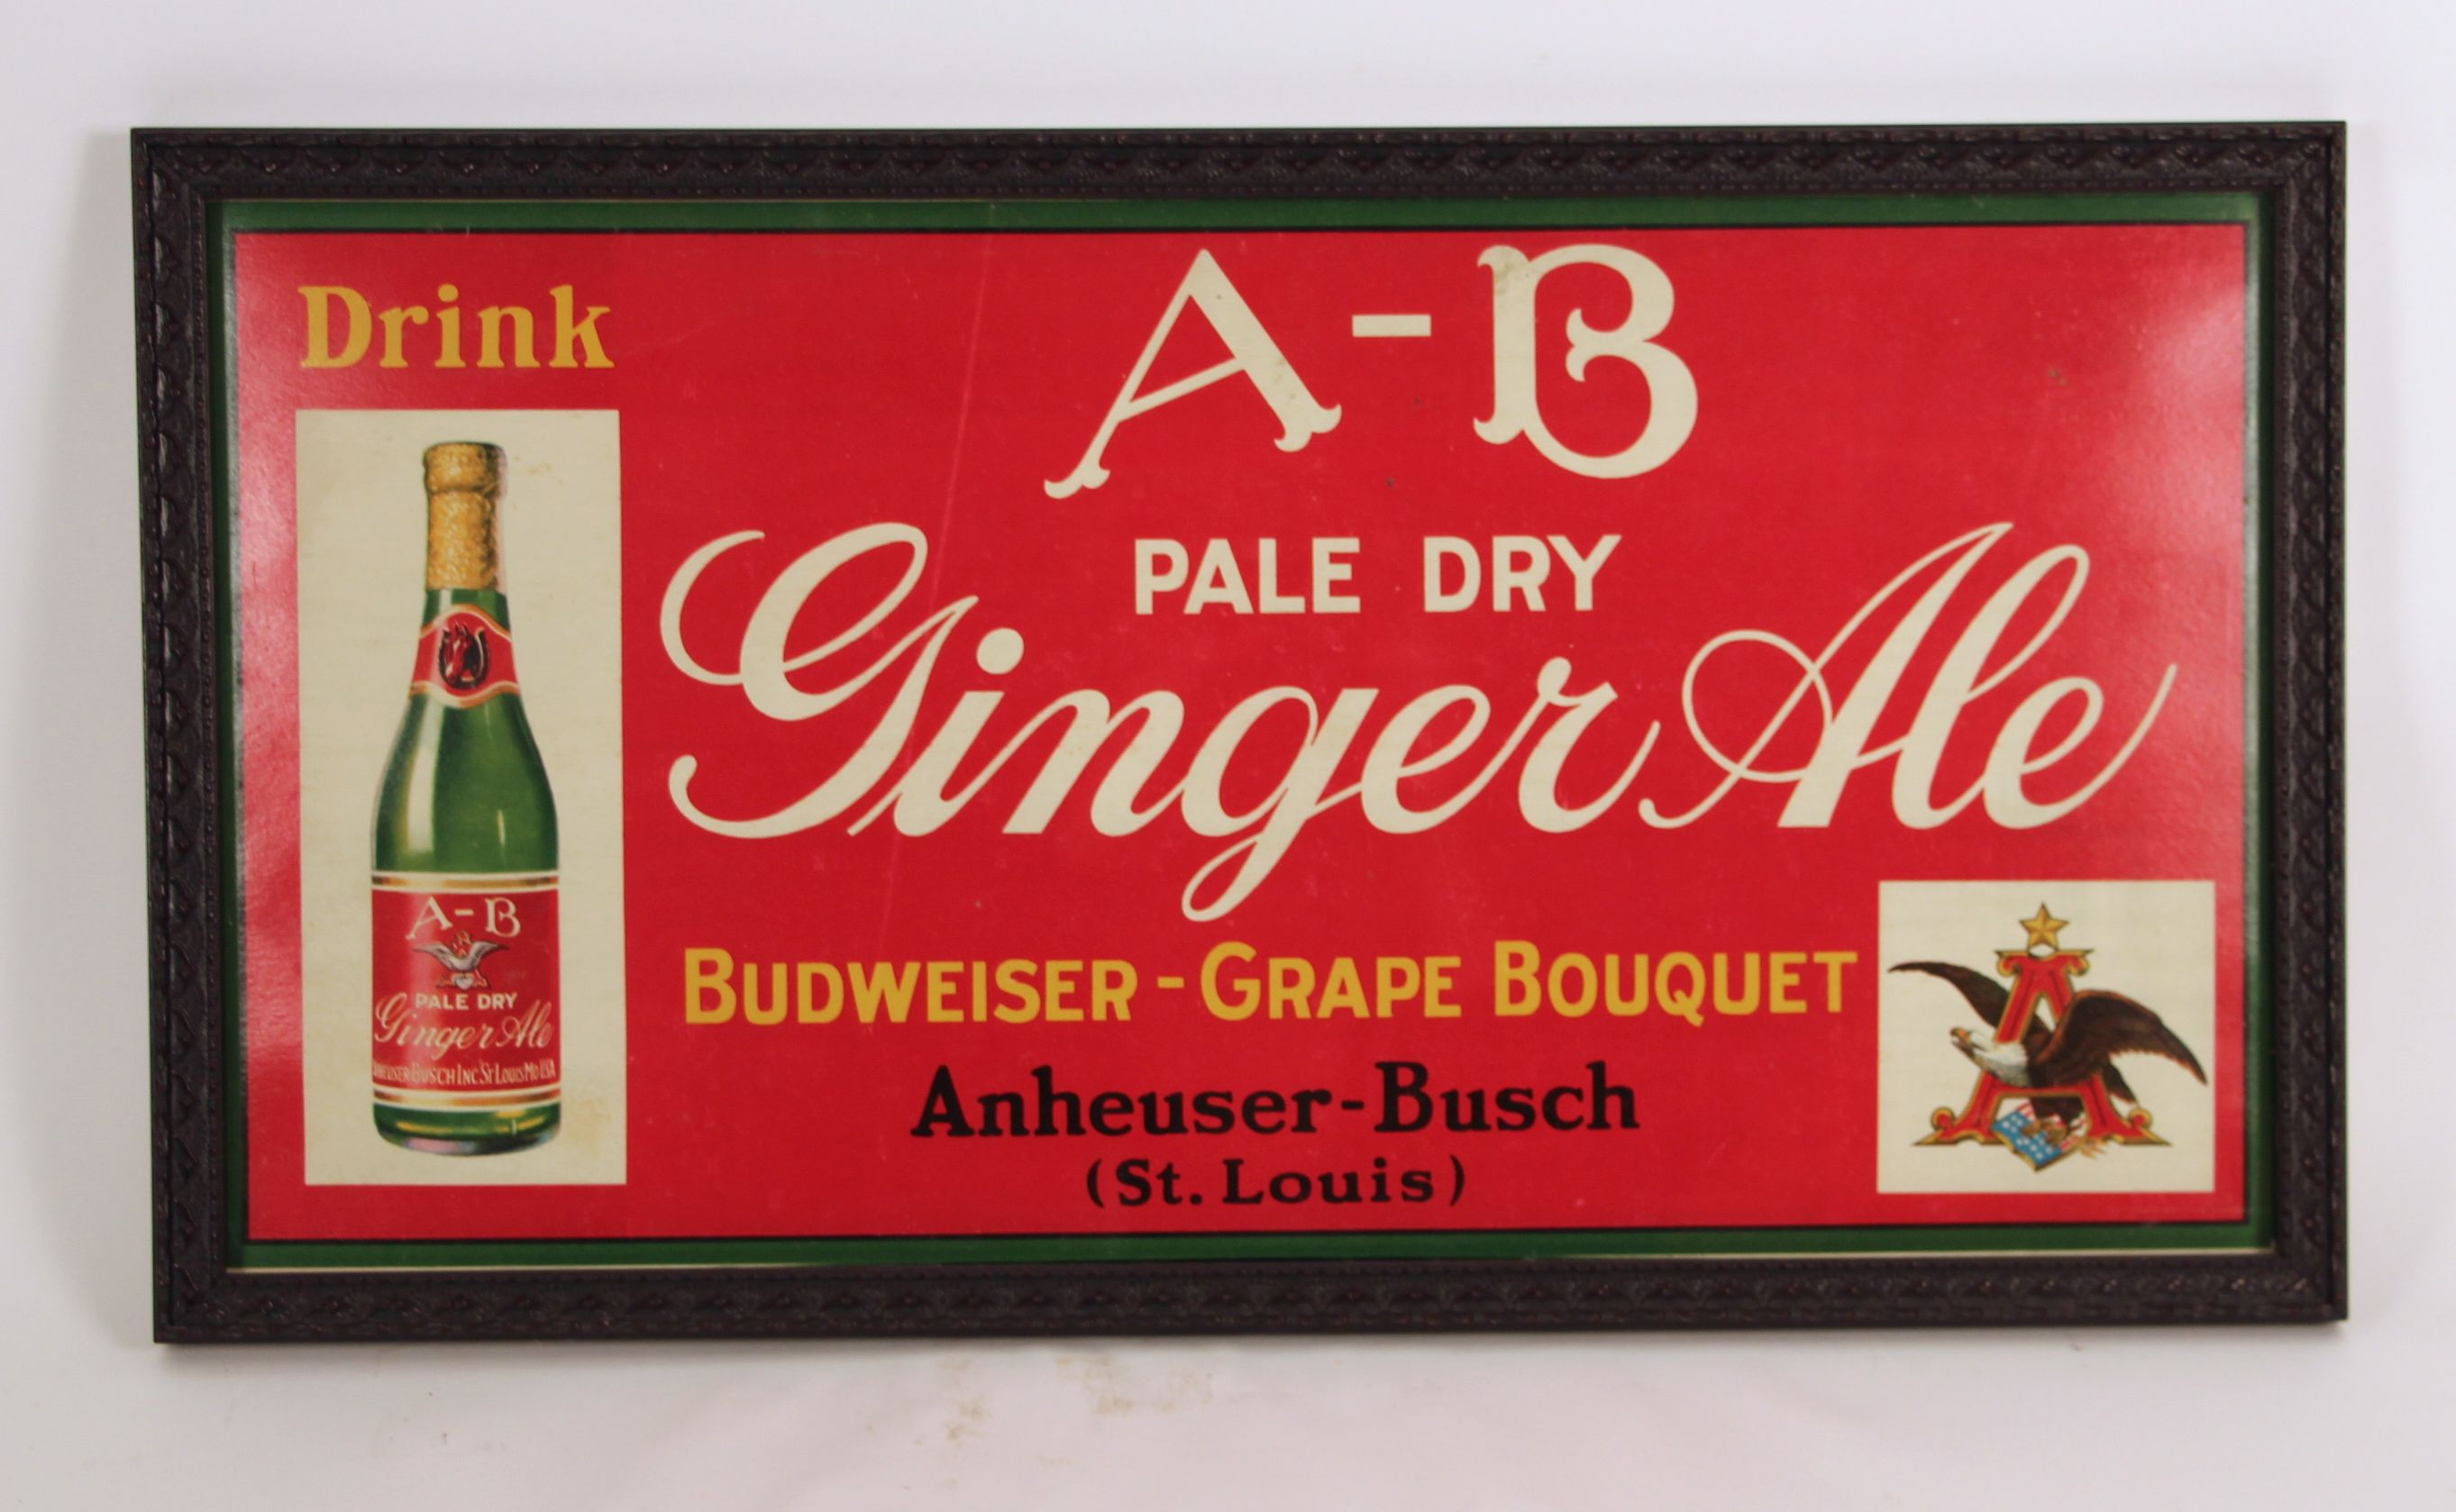 Anheuser Busch Pale Dry Ginger Ale Cardboard Sign Pre Prohibition Era Circa 1916 The Antique Advertising Expert Ginger Ale Dry Ginger Beer Brands